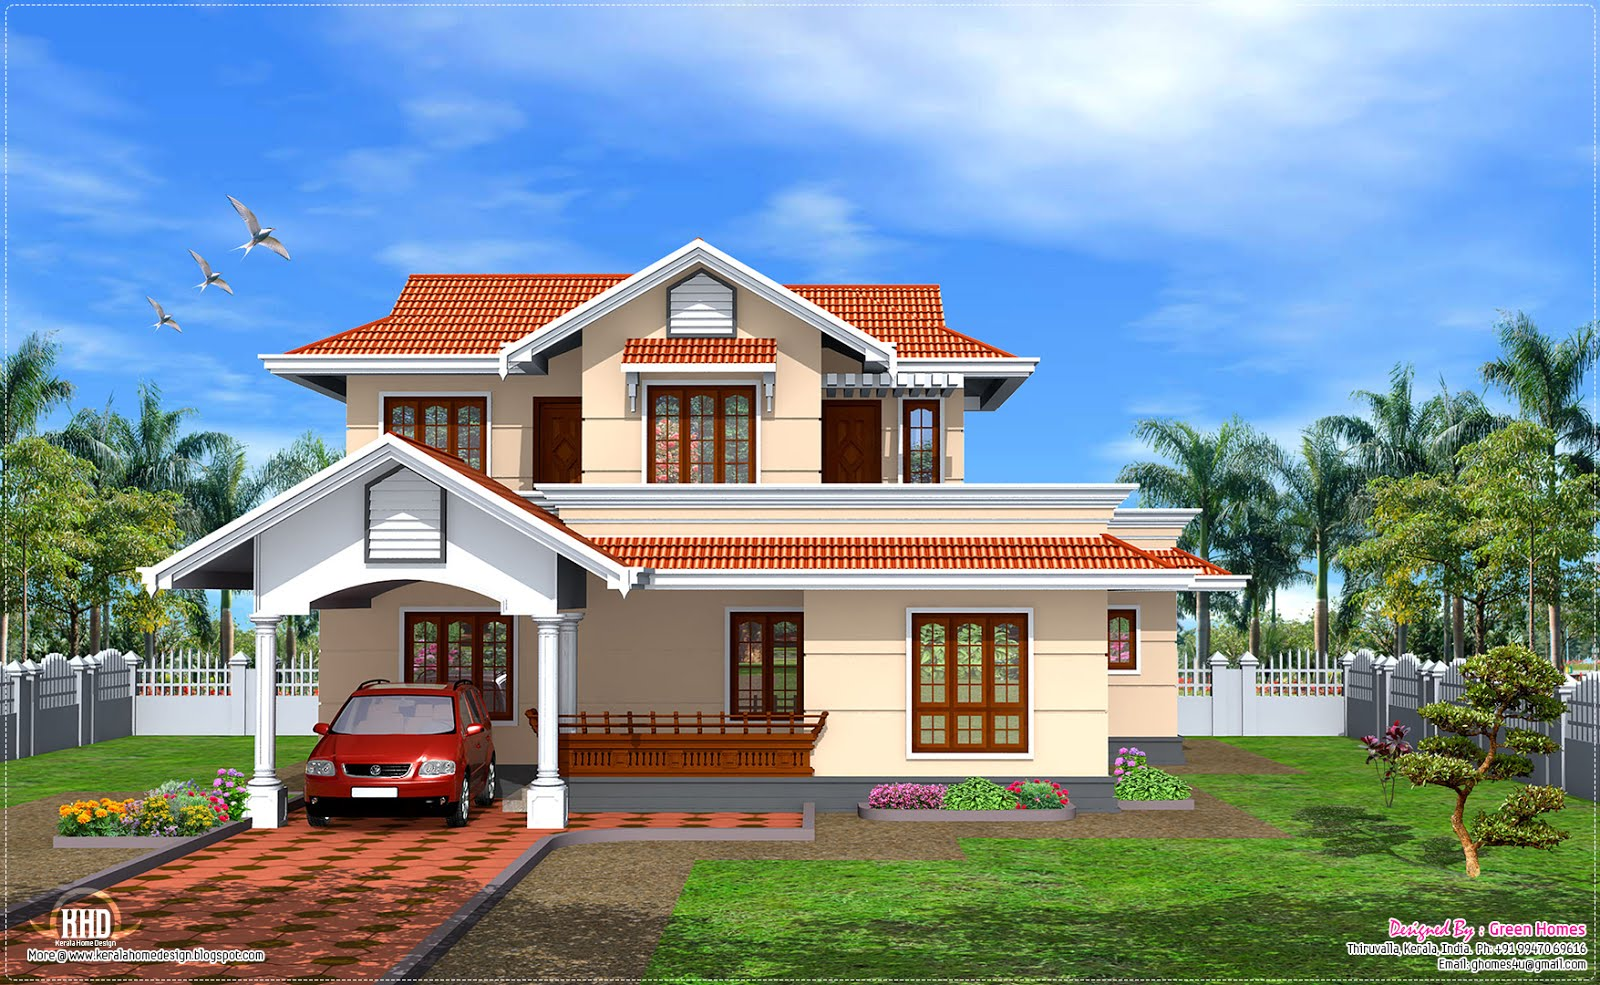 Window Models For Houses - Home Design Inside